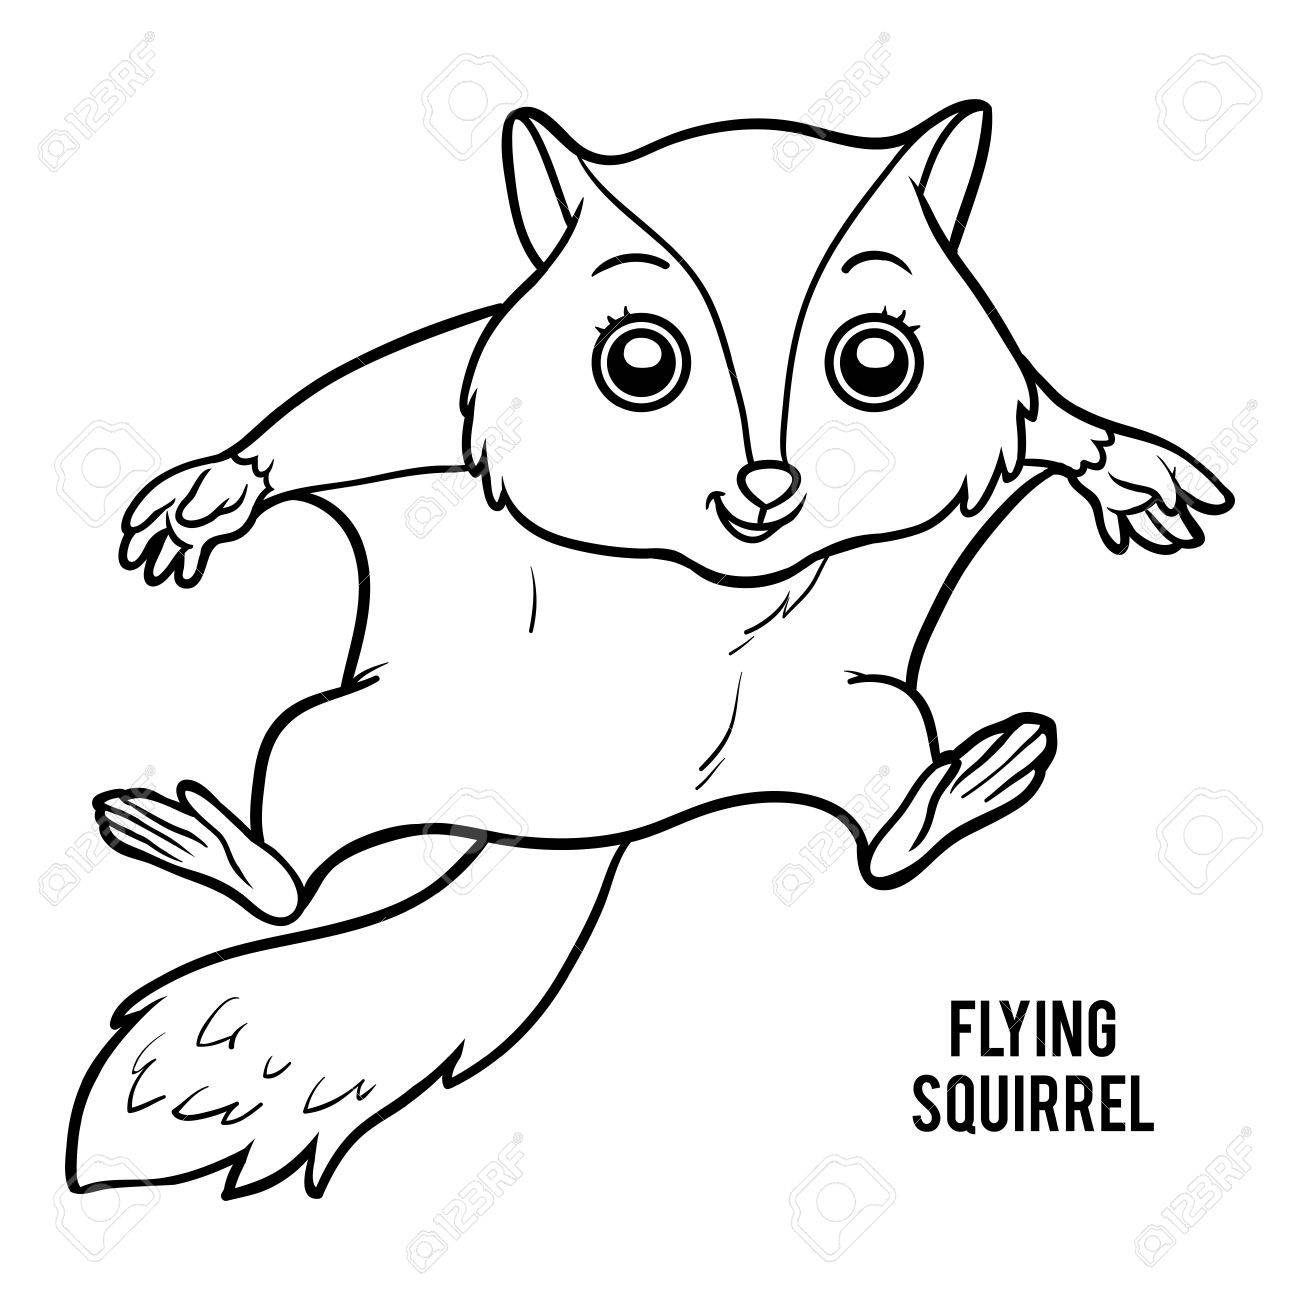 Coloring Book For Children, Flying Squirrel Royalty Free Cliparts ...